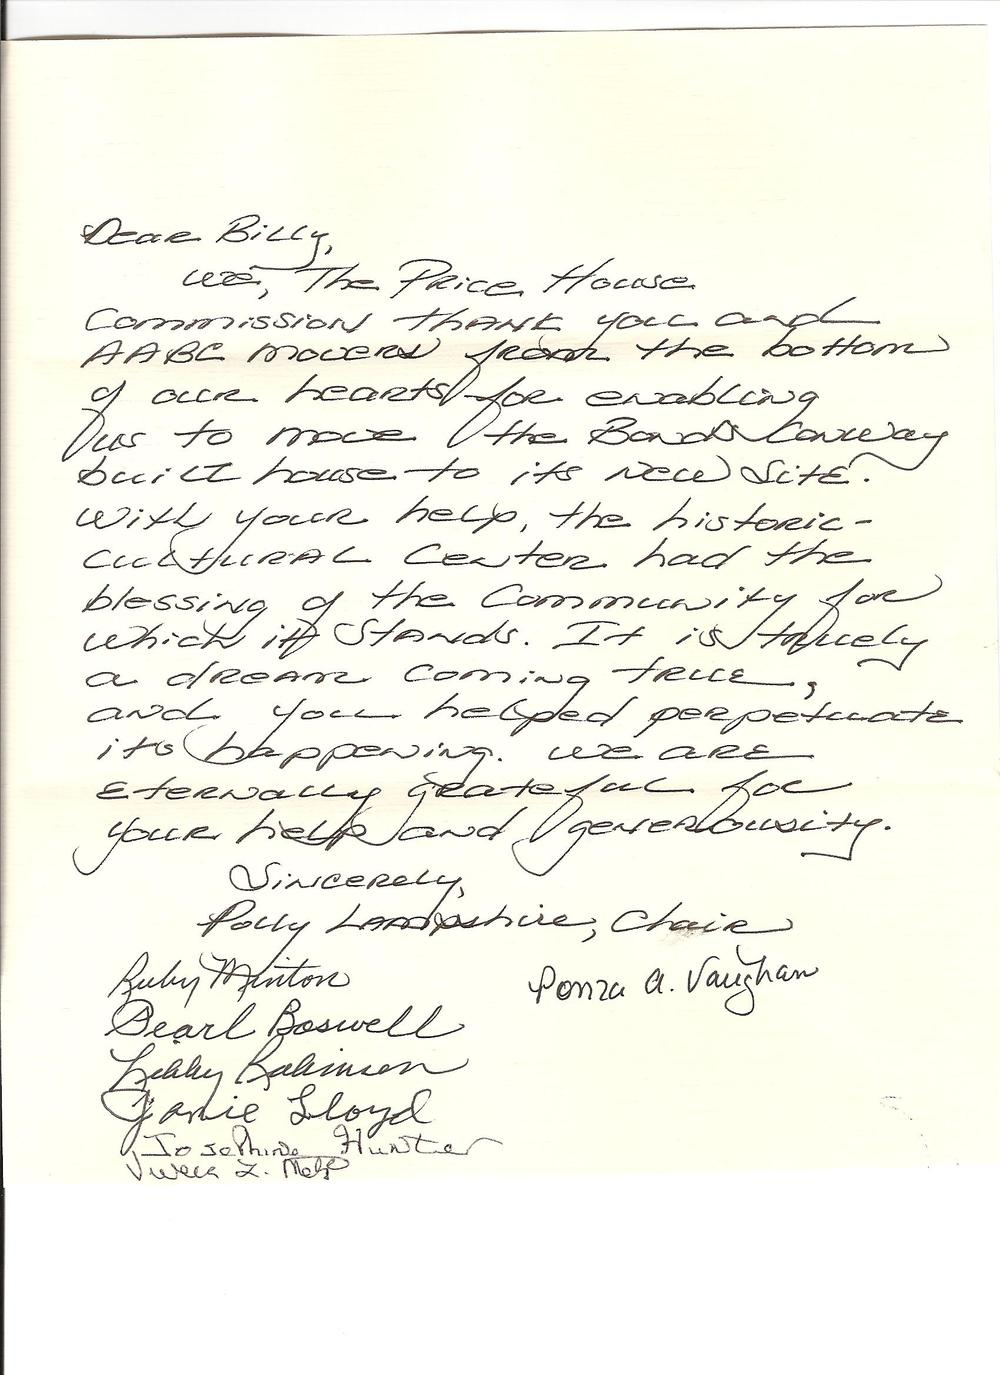 A Thank You Letter from the Price House Commission